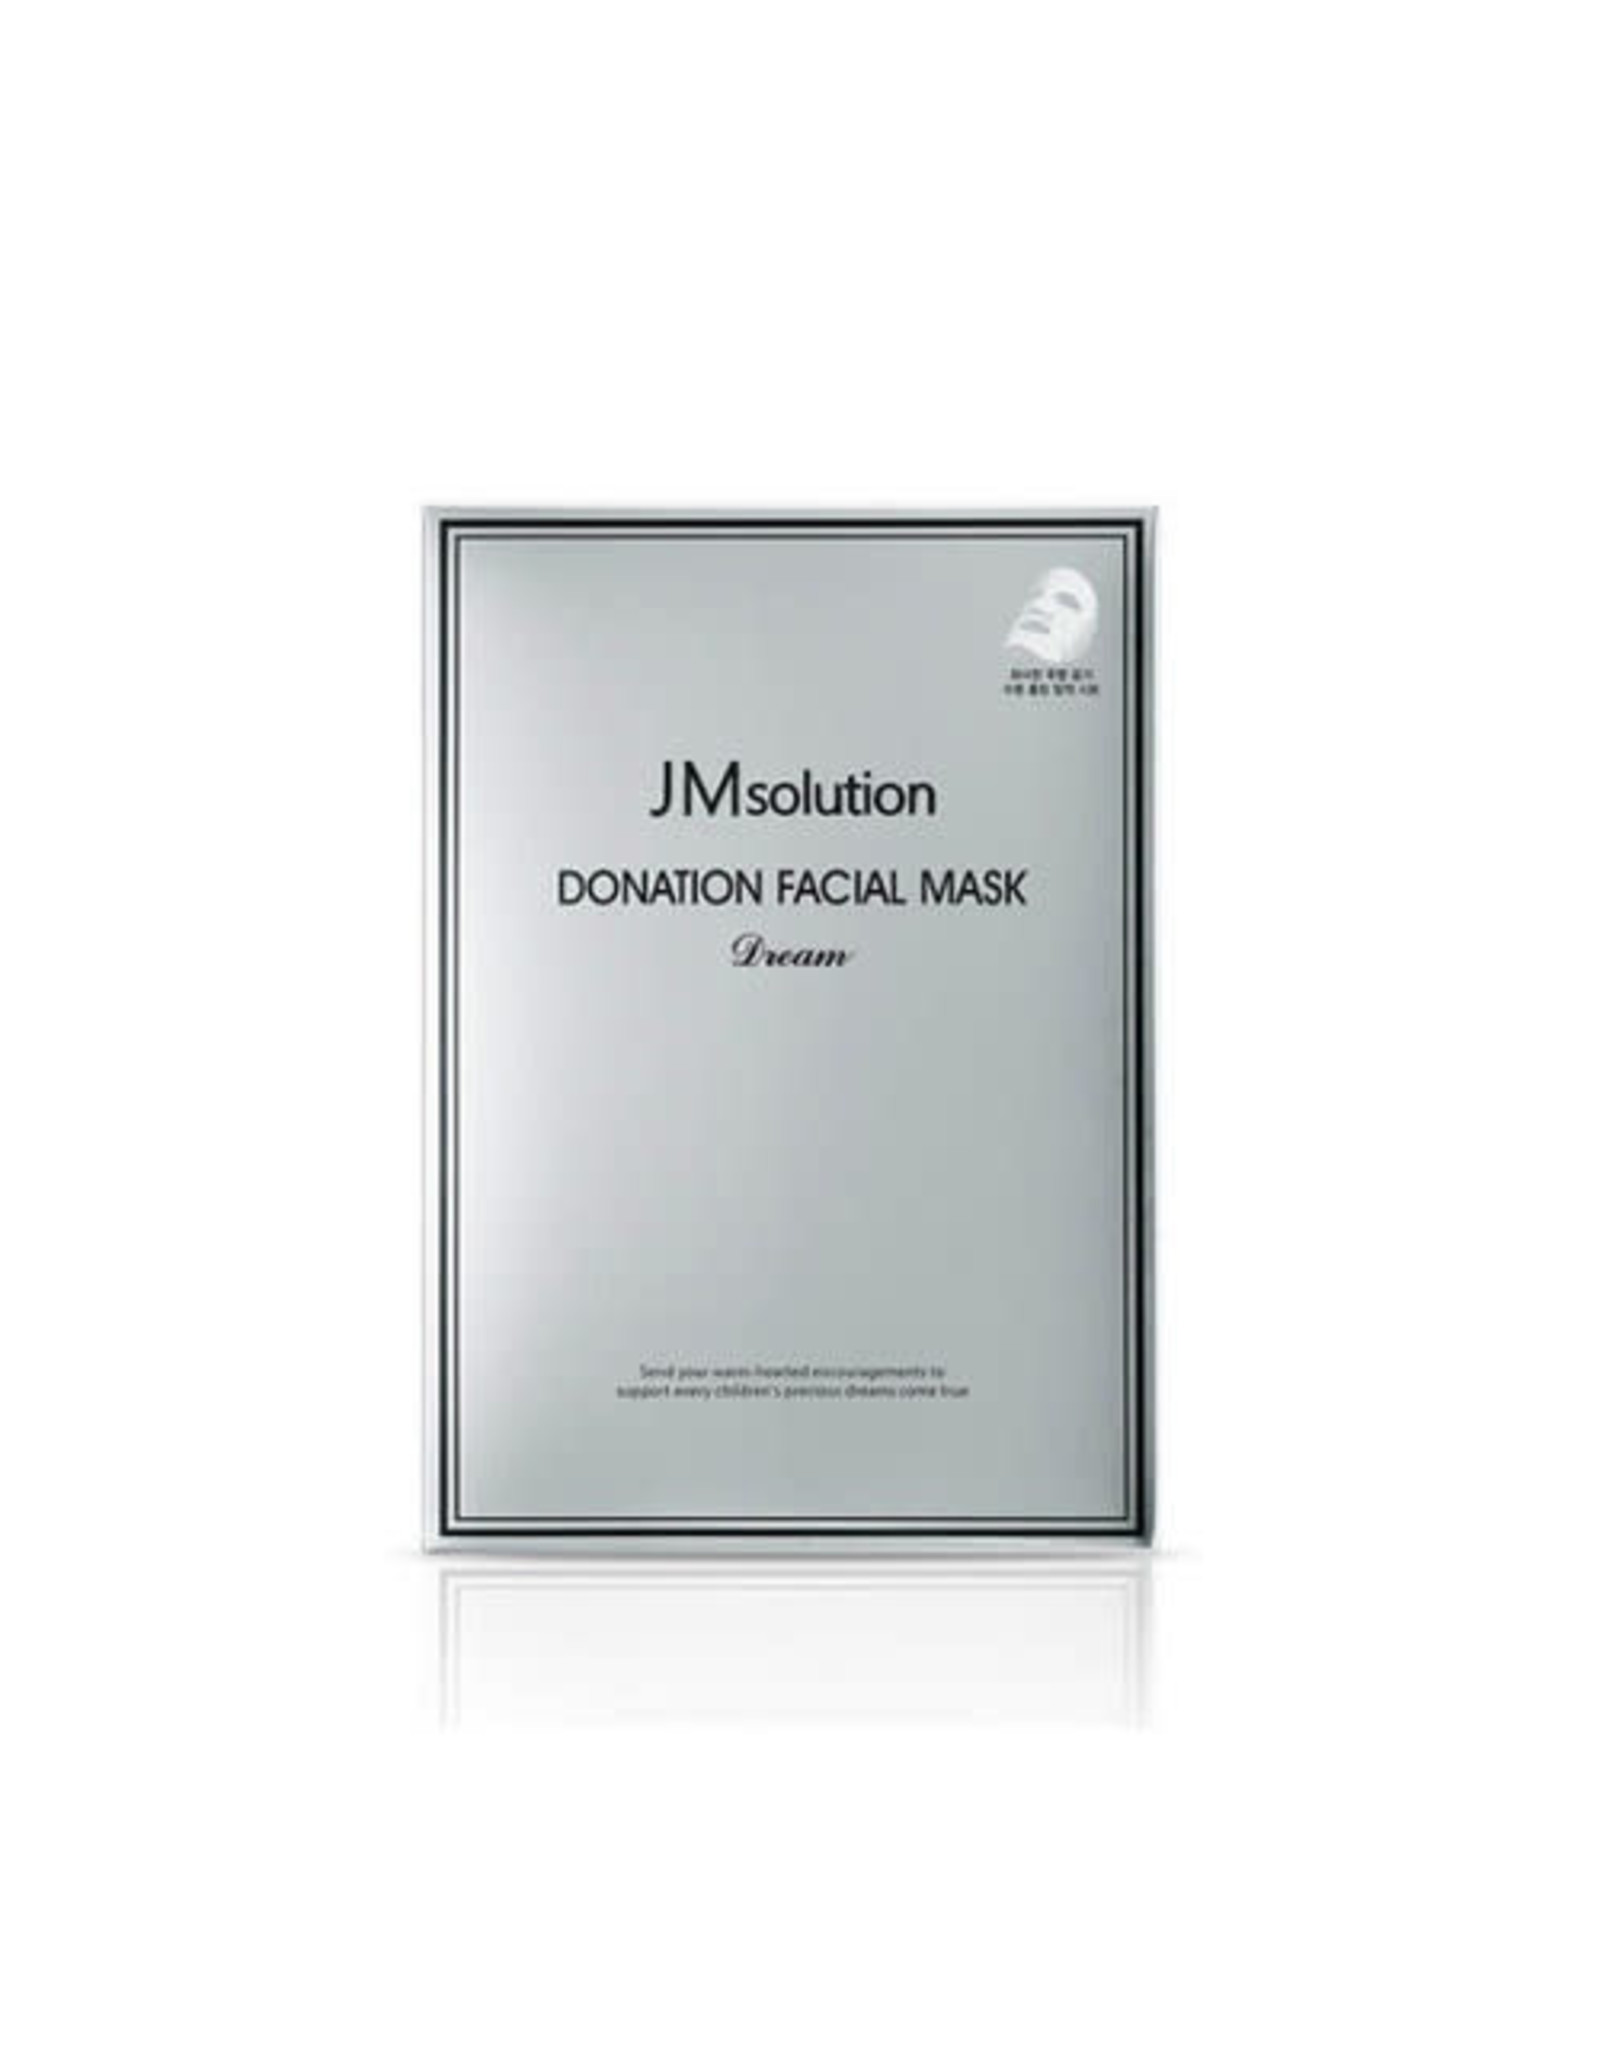 JM Solution JM Solution Nourishment Donation Facial Mask Dream